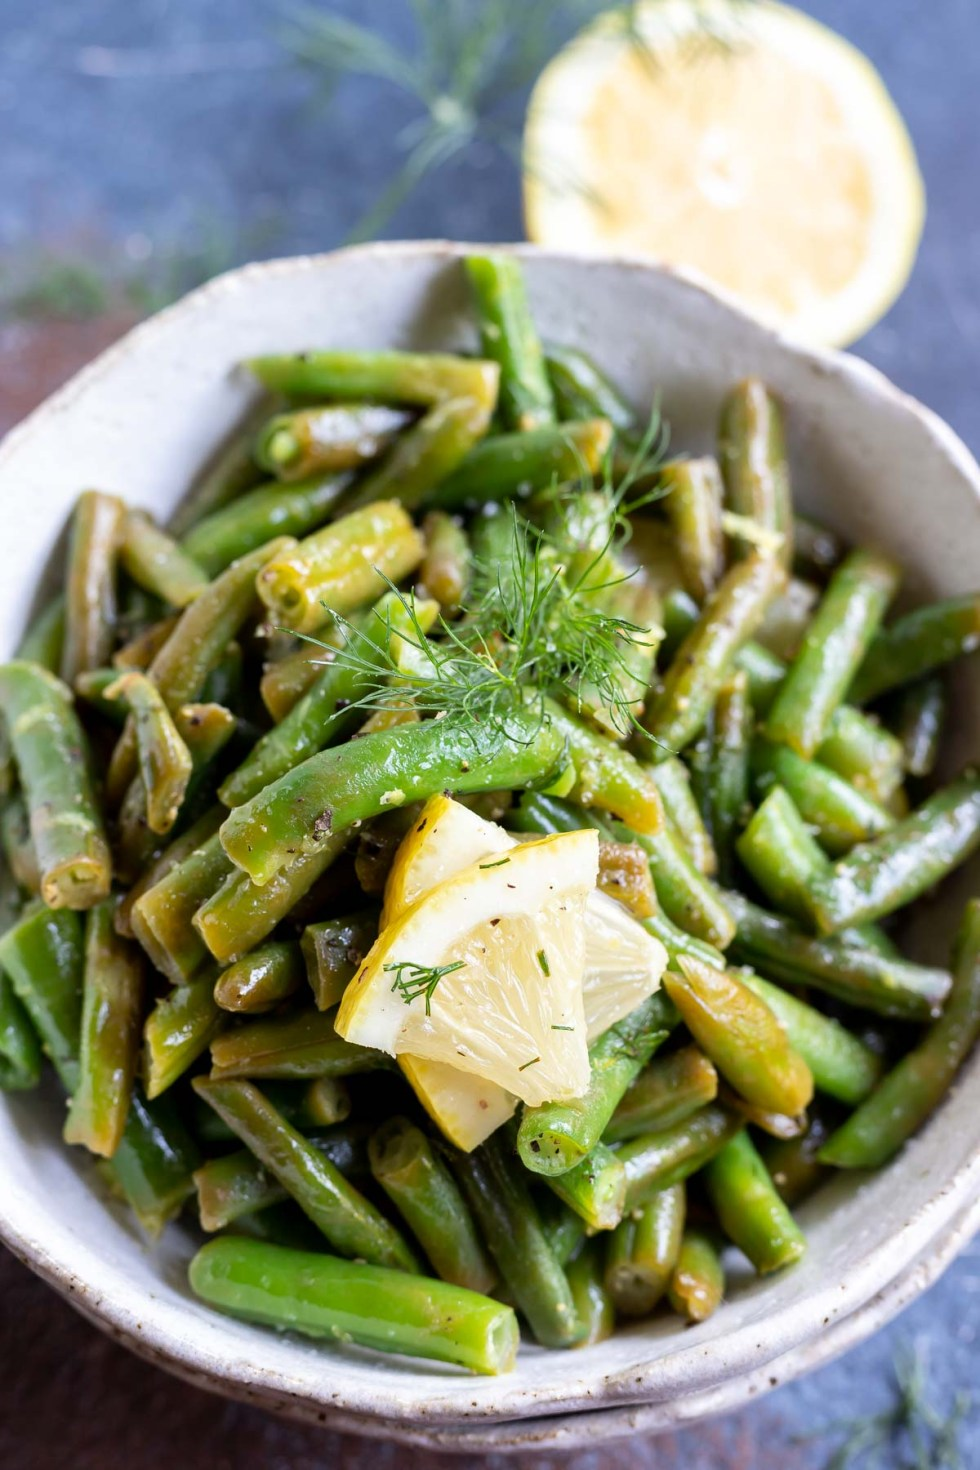 green beans and lemon slices served in white bowl